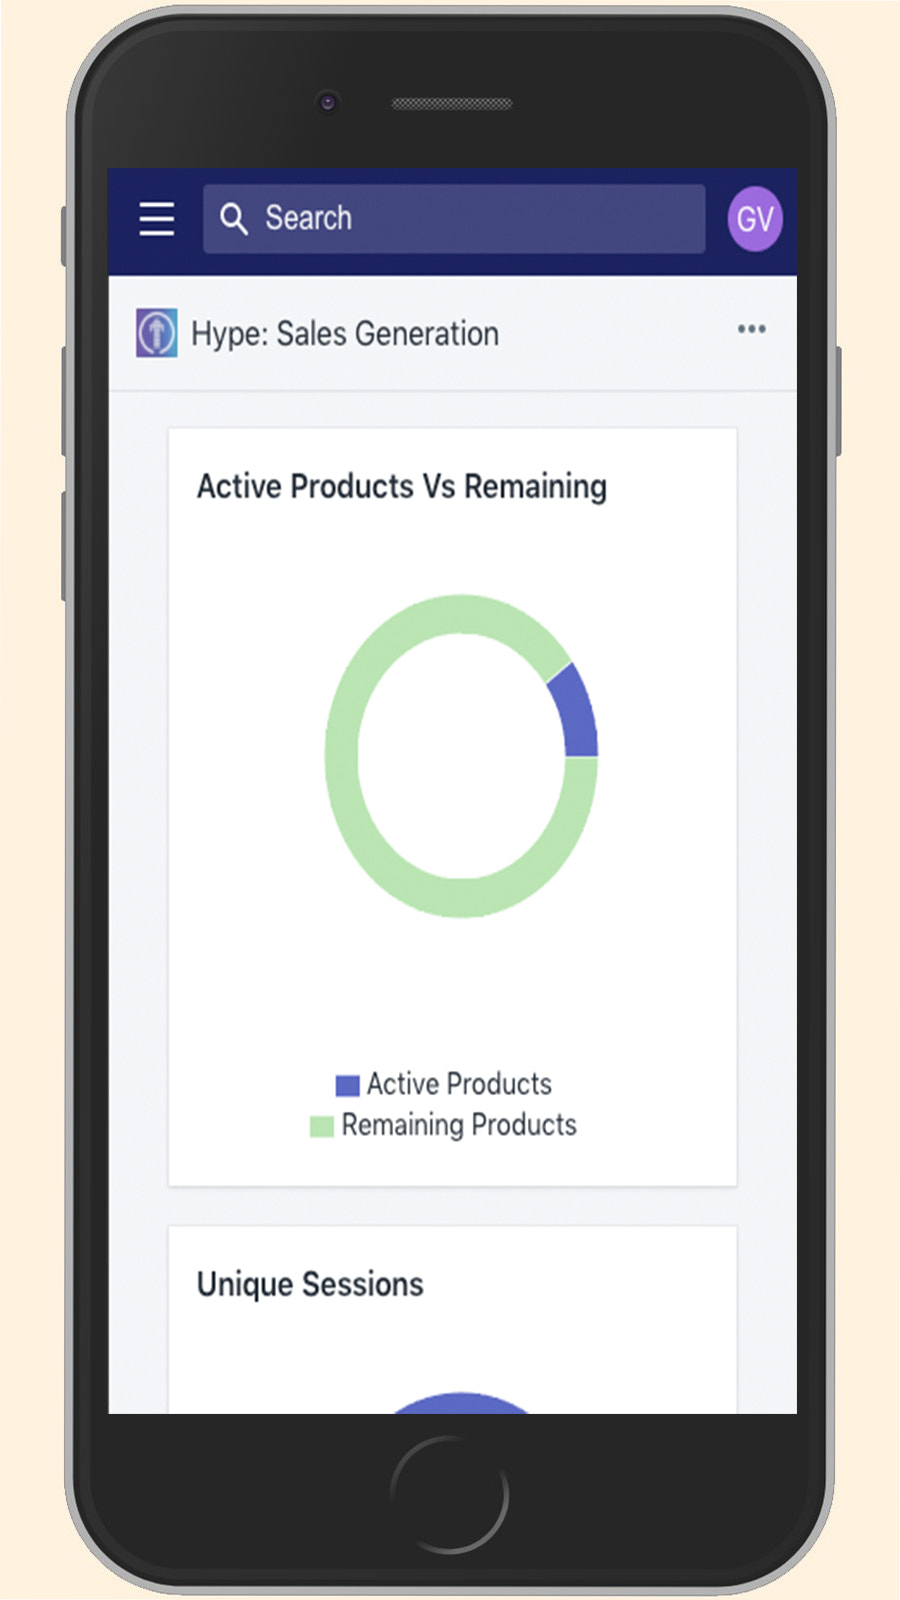 In-depth analytics available on Mobile and Desktop